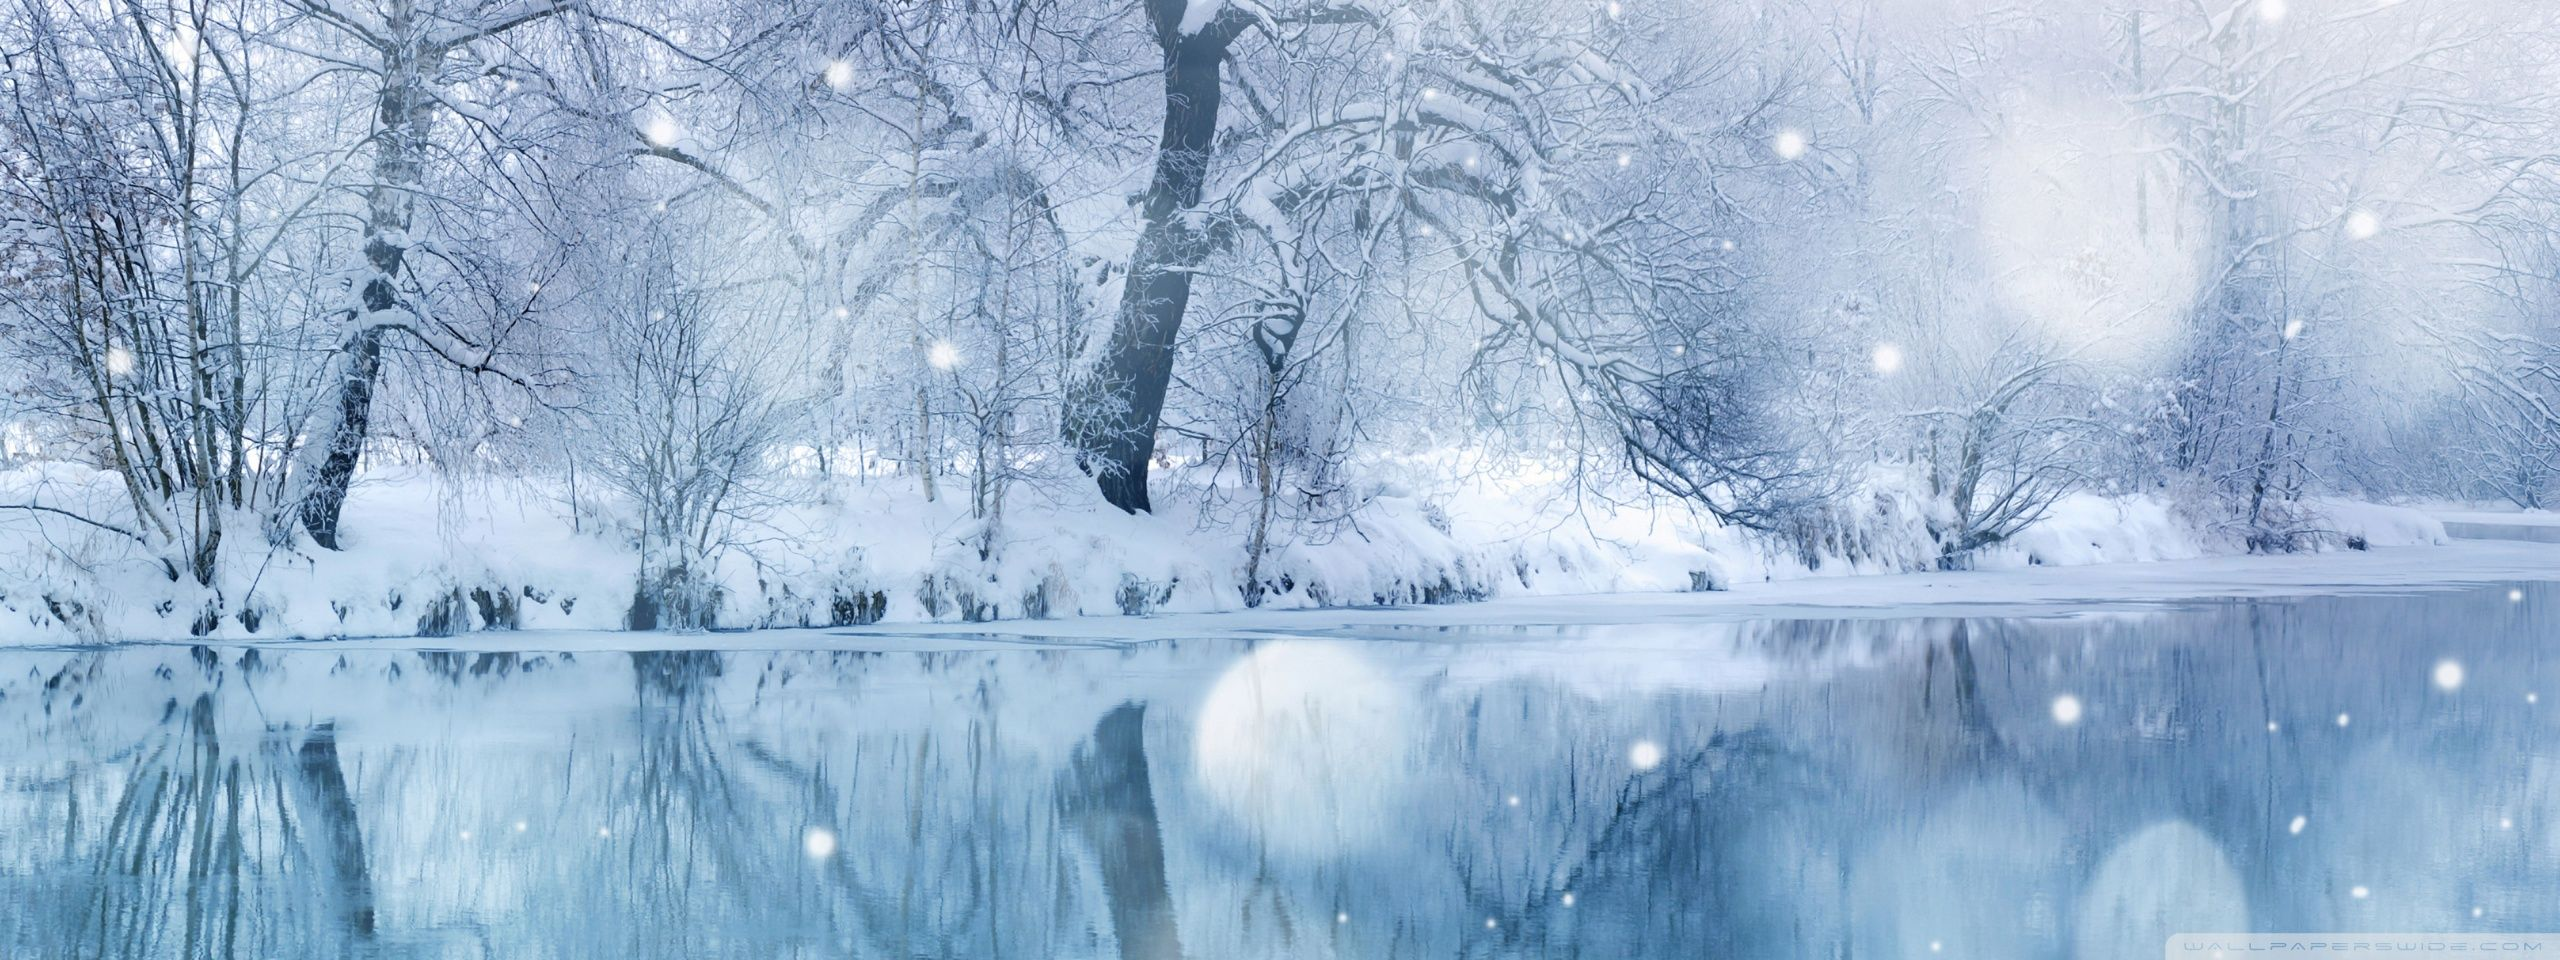 Cool Wallpaper High Resolution Snow - 8a14bf6d026b9f196fa092e7efed7171  Collection_525680.jpg